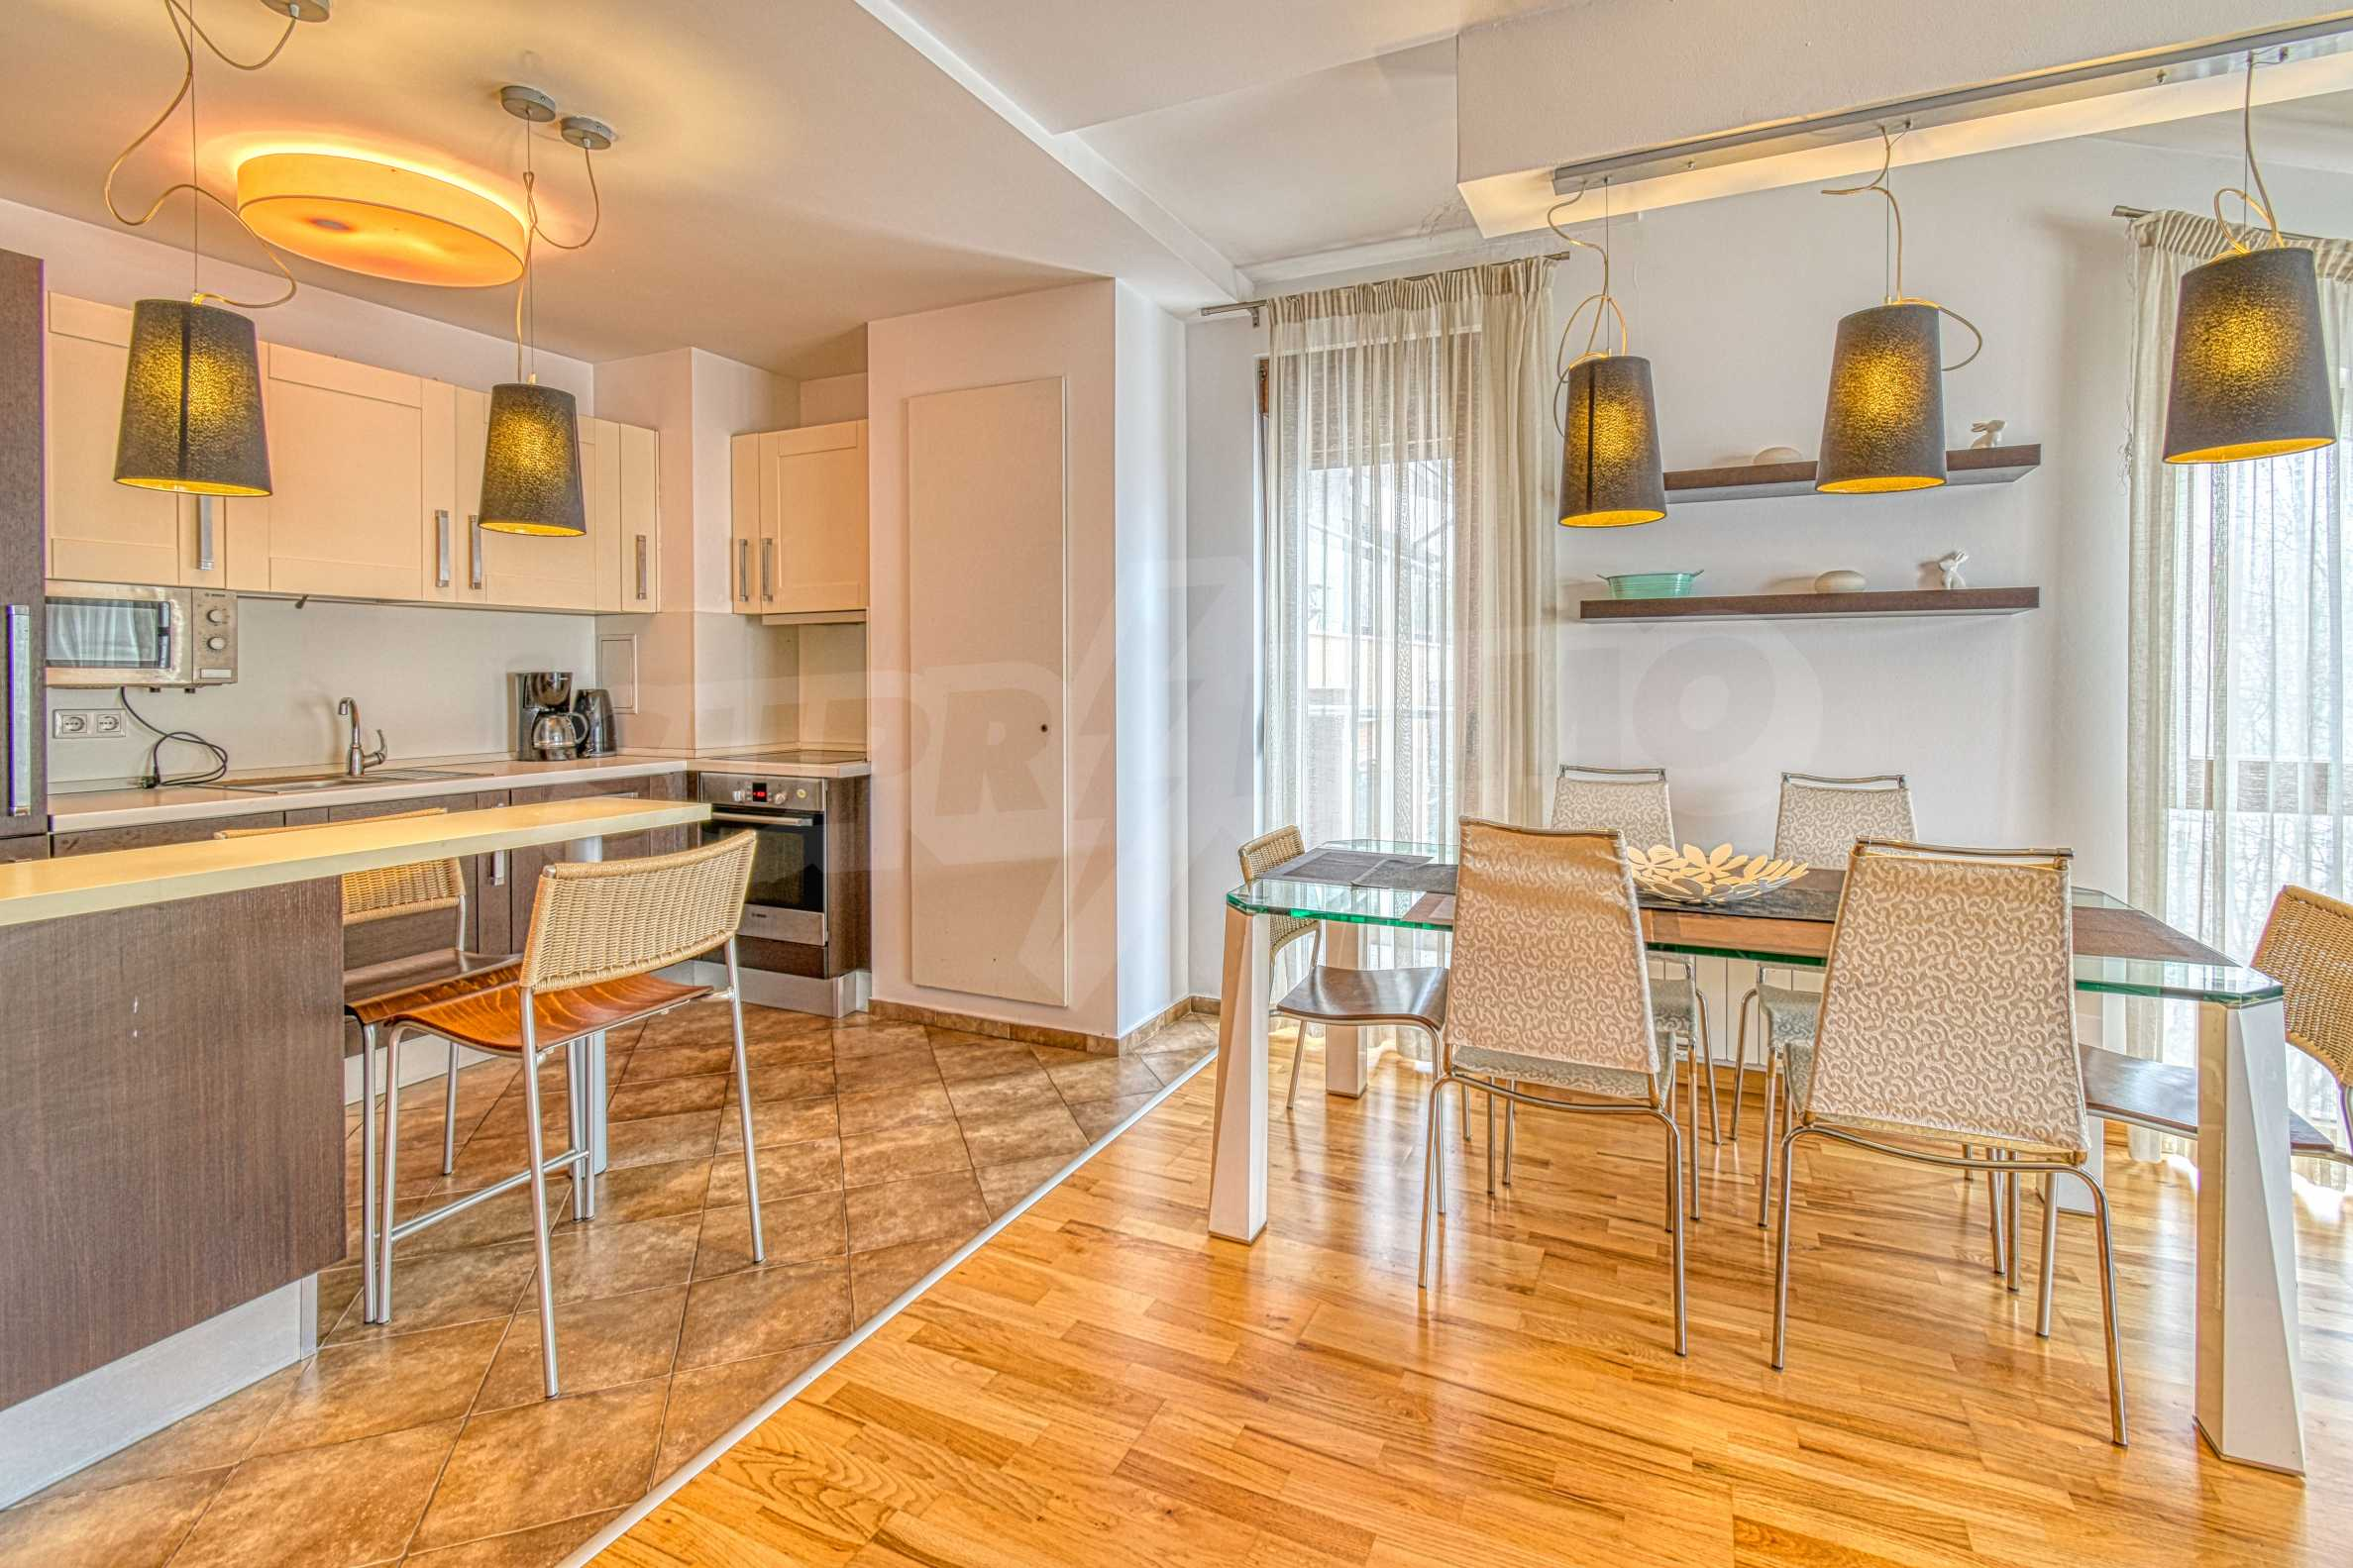 Luxurious and fully furnished two-bedroom apartment in a gated complex at the foot of Vitosha Mountain 1